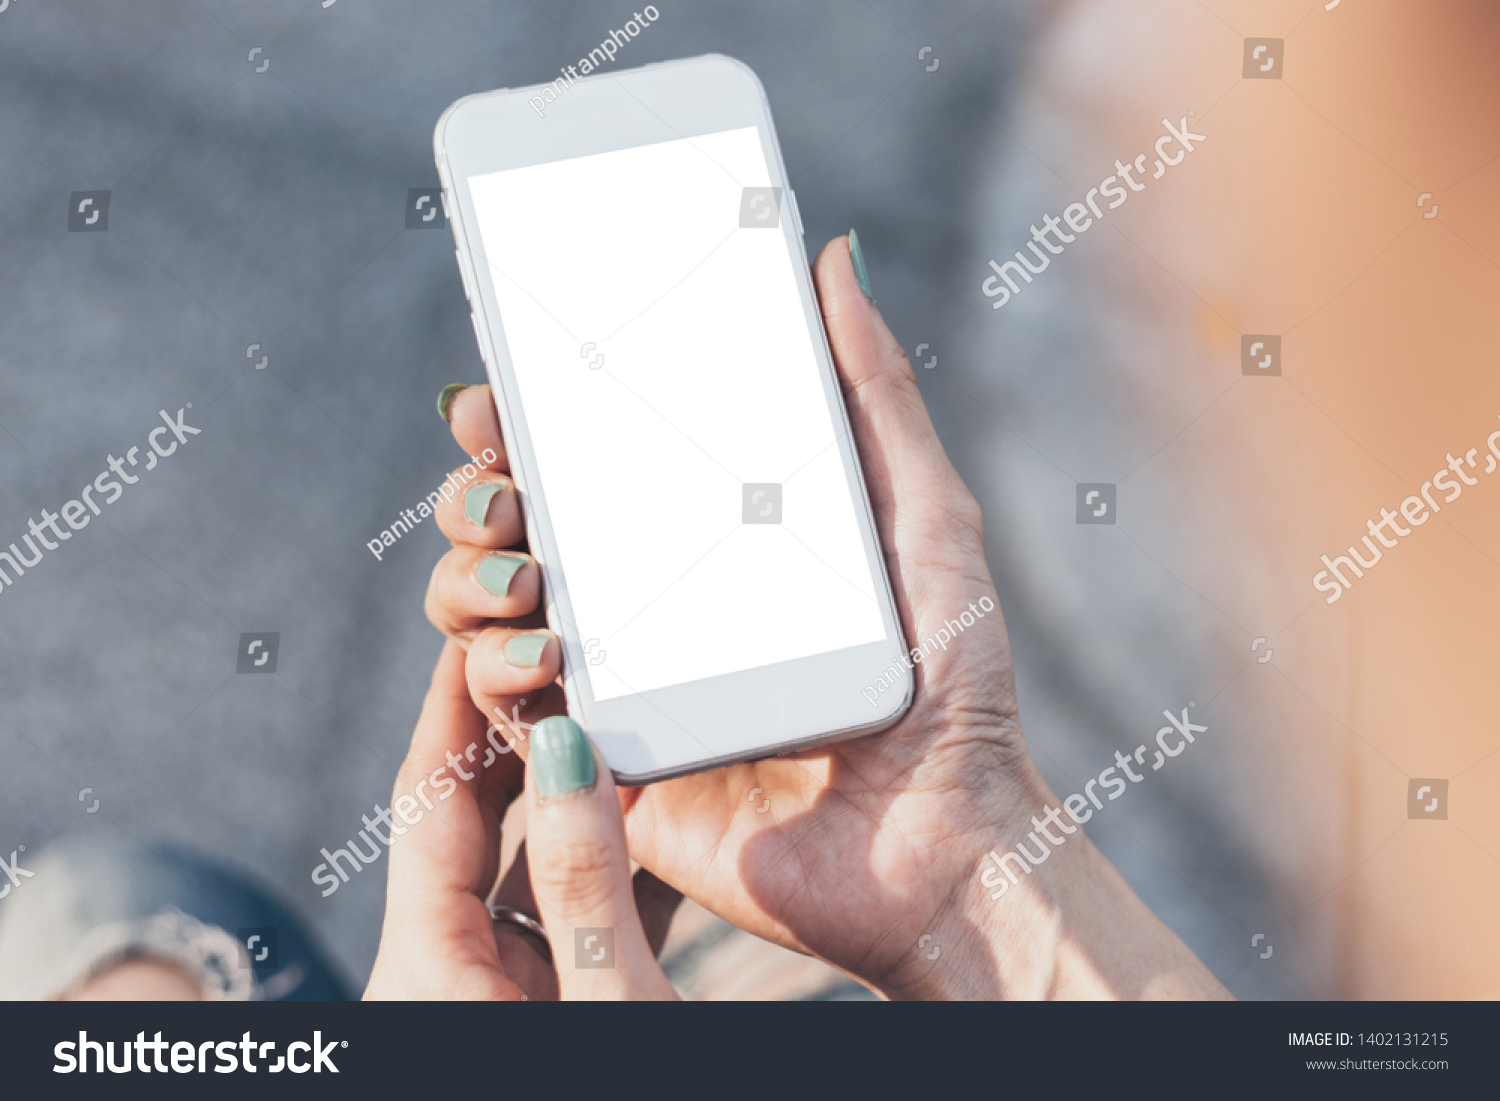 Mockup image woman hand holding texting using mobile,cell phone with copy space,white blank screen for text.concept for contact business,people communication,technology electronic device #1402131215